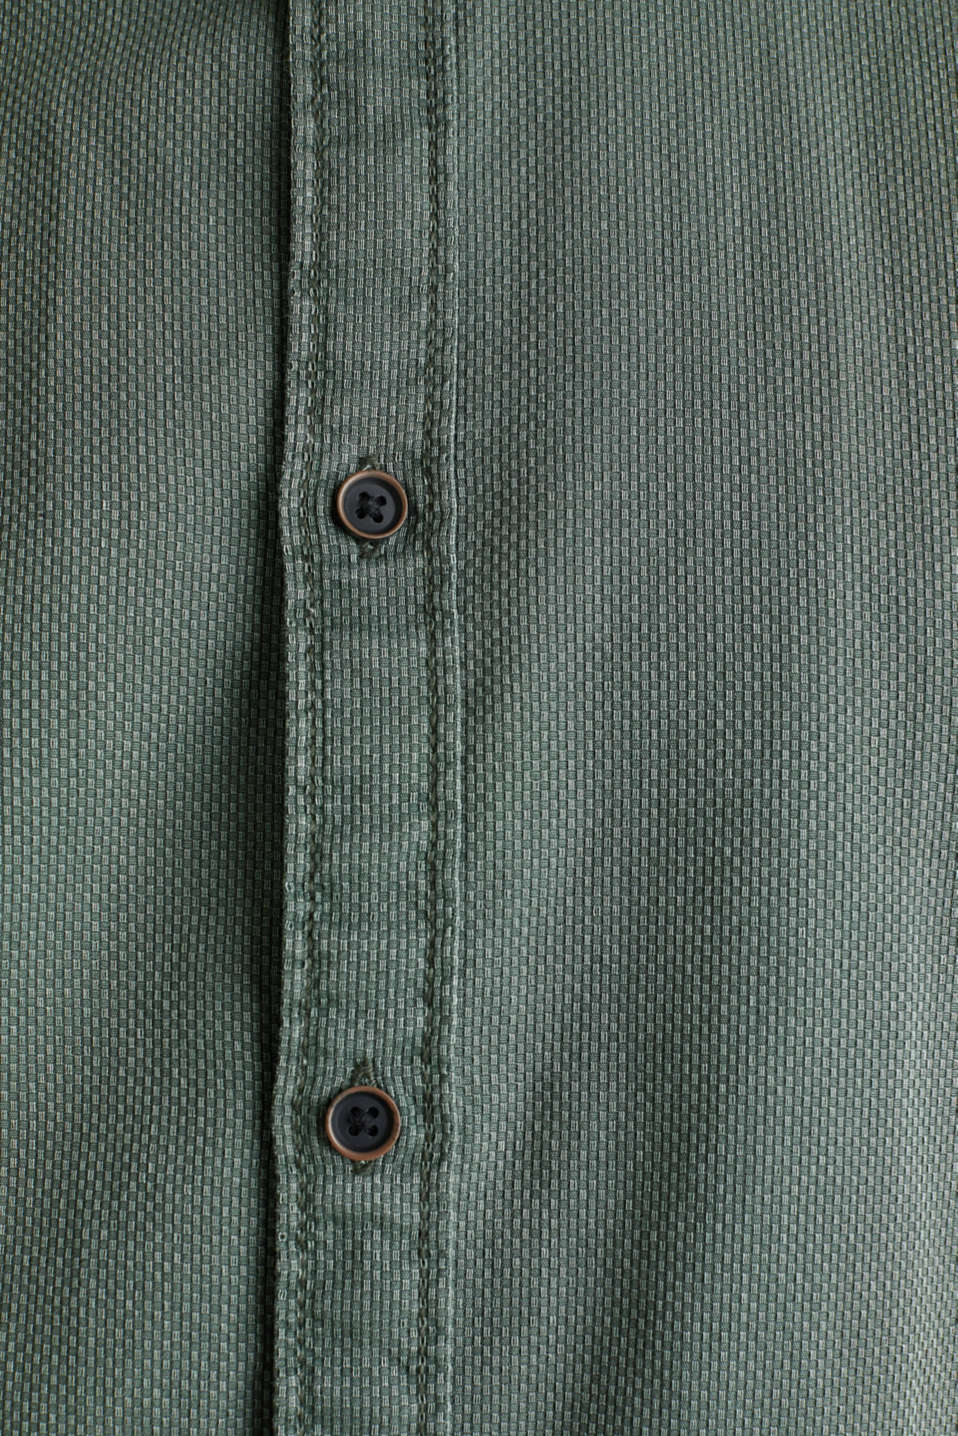 Shirt with a checked texture, 100% cotton, KHAKI GREEN 5, detail image number 4